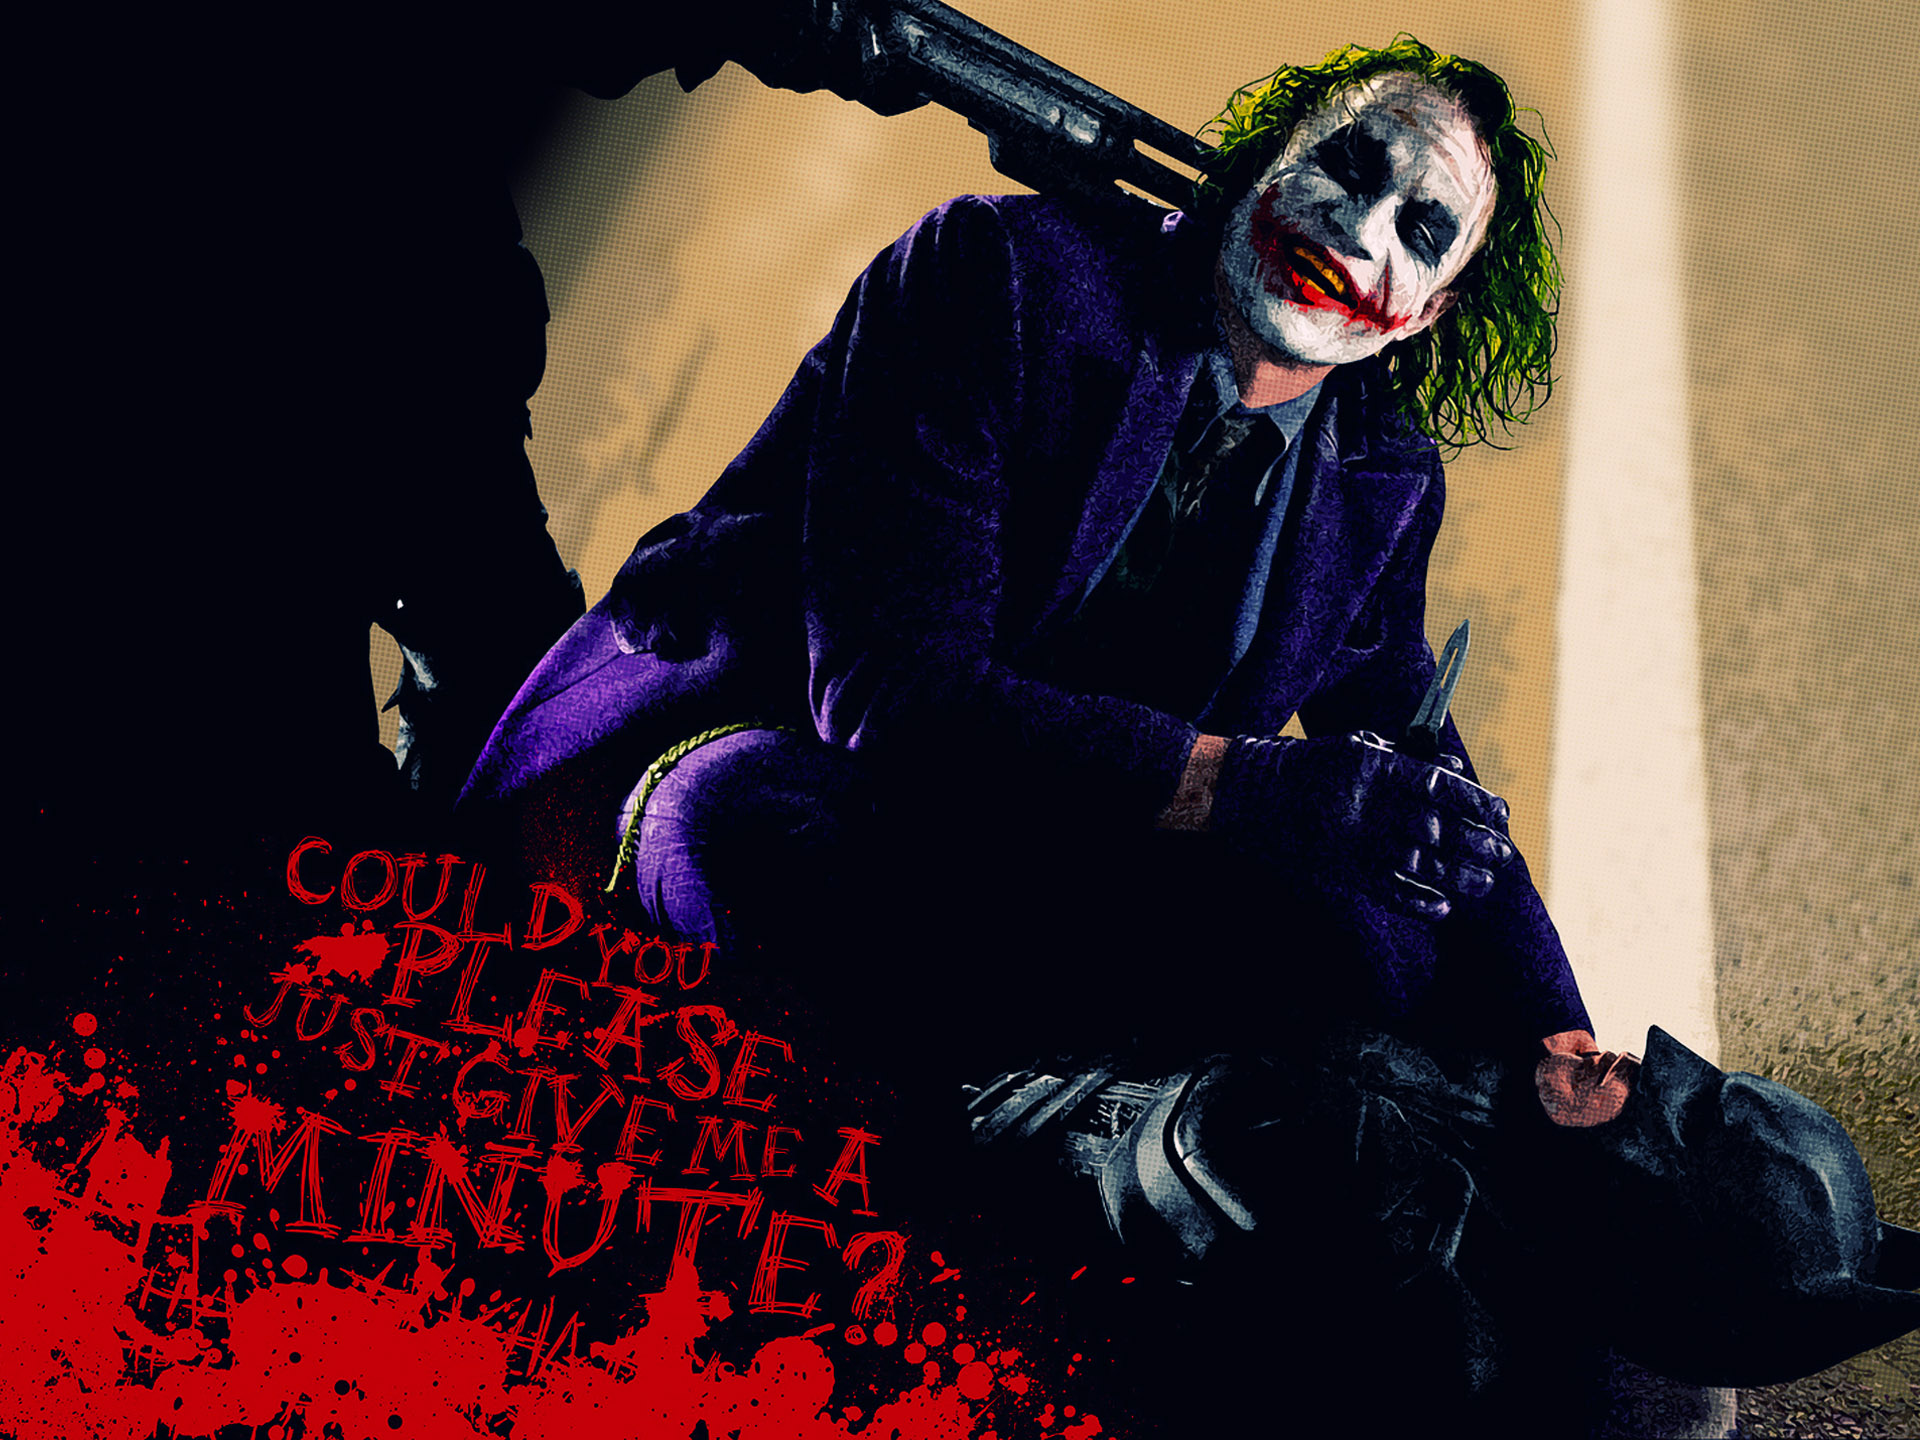 joker wallpaper 1920x1440